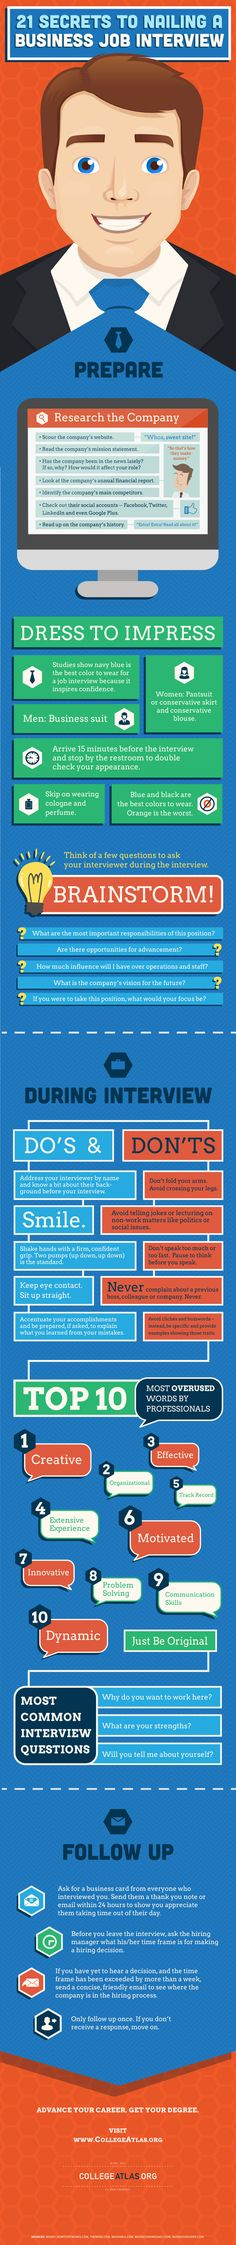 Visualistan: 21 Secrets to Nailing a Business Job Interview #infographic